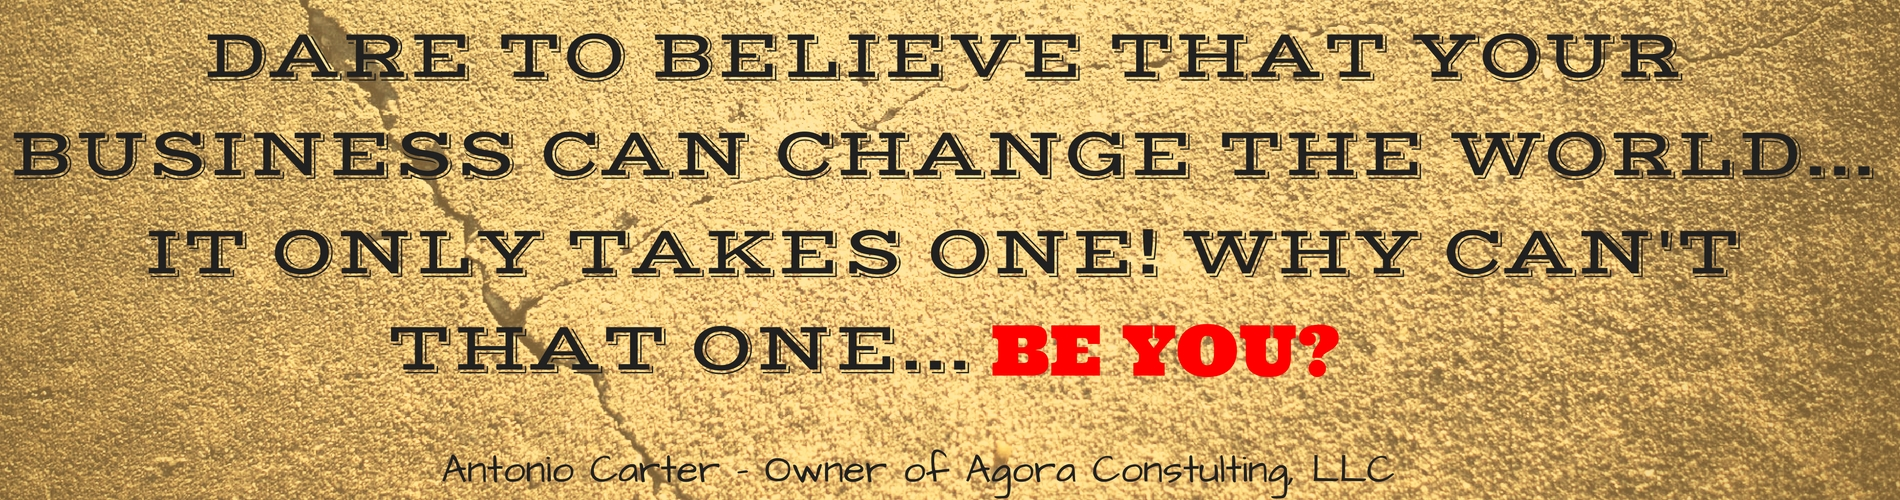 DARE TO BELIEVE THAT YOUR BUSINESS CAN CHANGE THE WORLD...(3)